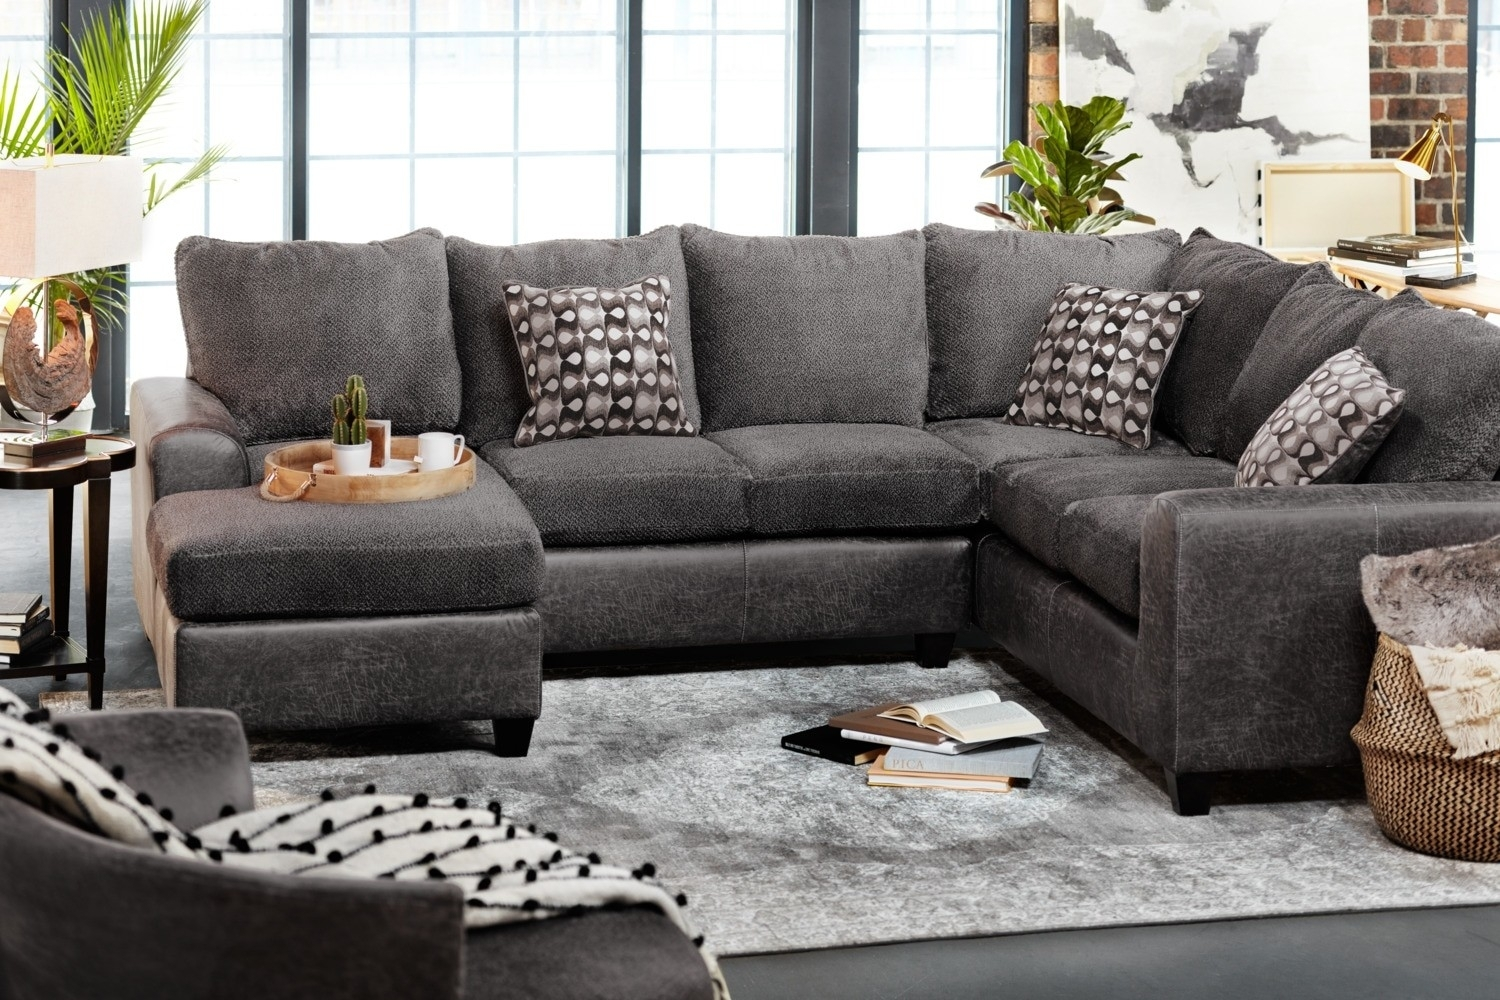 3 Piece Sectional Malbry Point W Laf Chaise Living Spaces 223533 0 Intended For Malbry Point 3 Piece Sectionals With Raf Chaise (Photo 1 of 25)